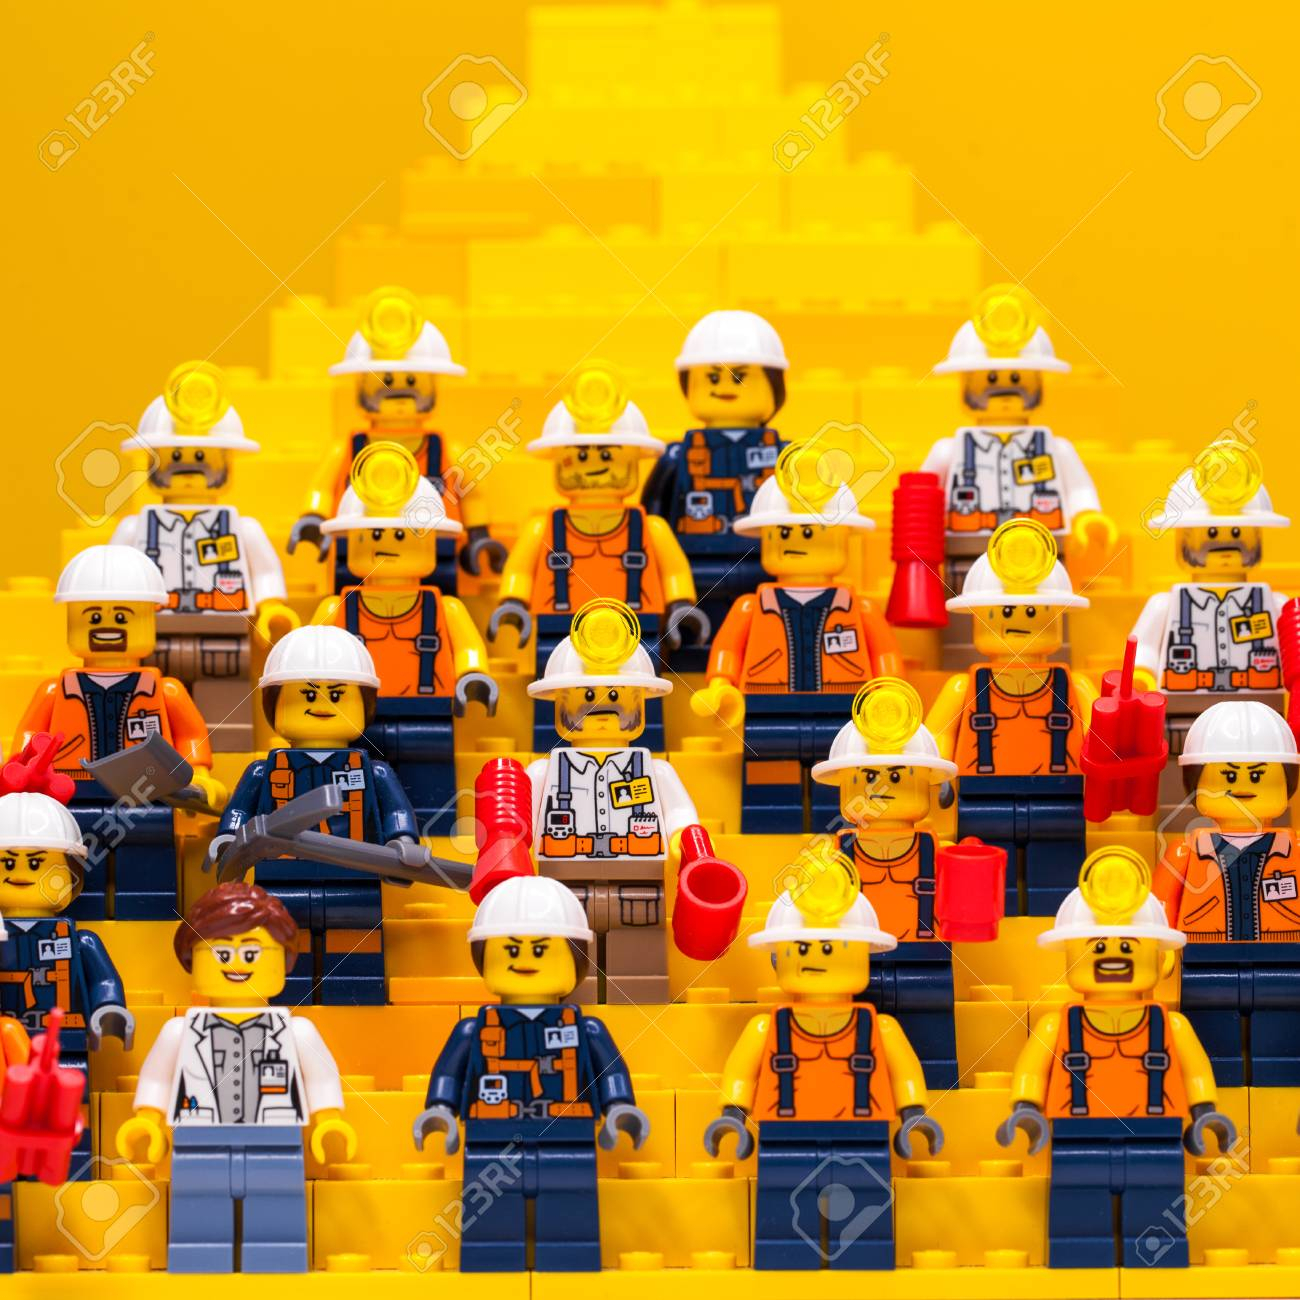 photo russia samara december 18 2019 constructor lego city a large team of builders miners